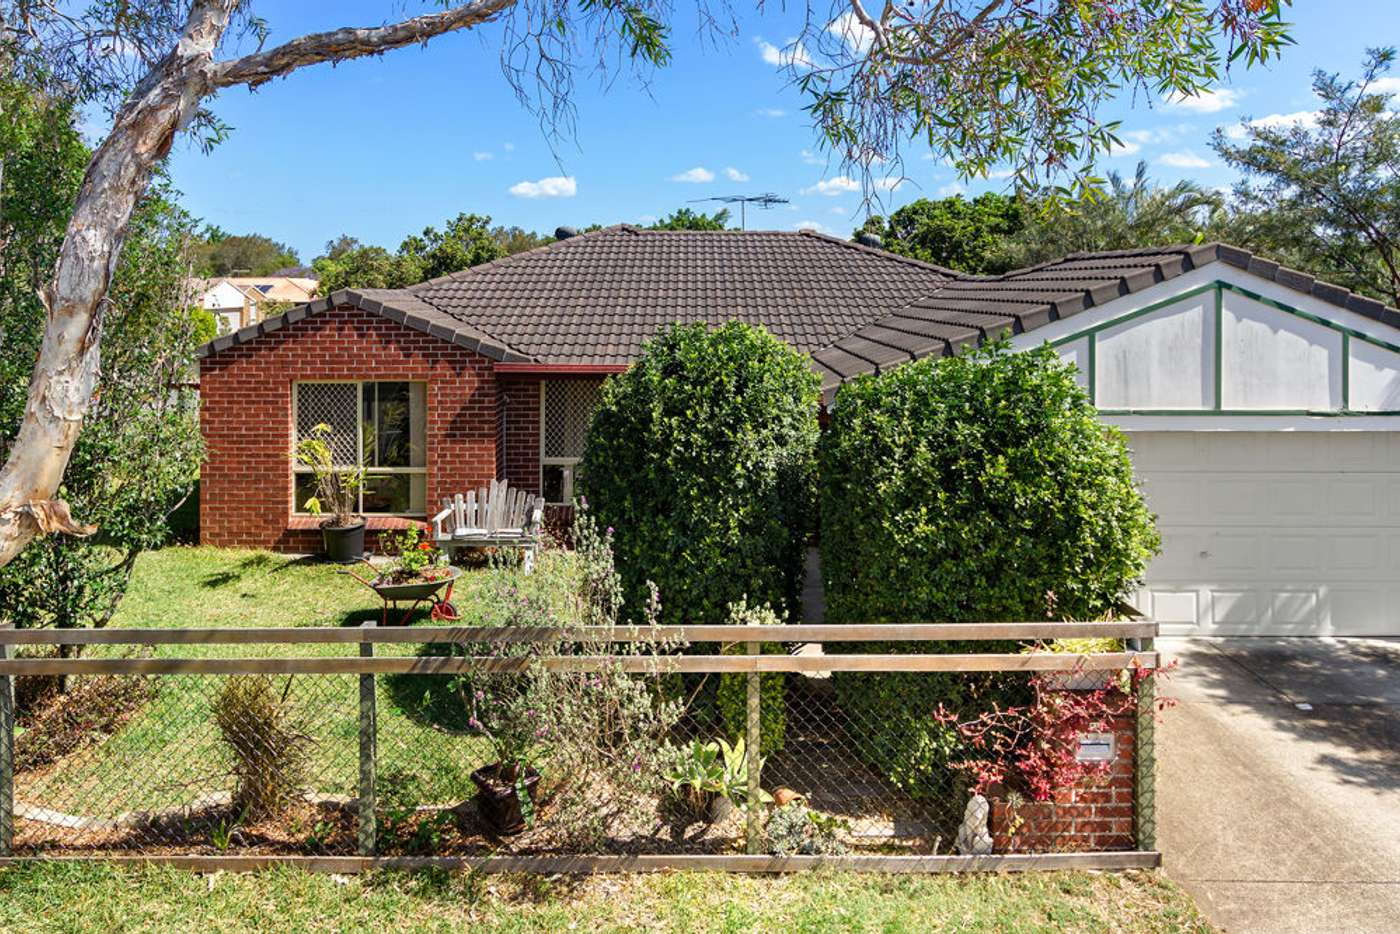 Main view of Homely house listing, 24 Brigidine Crescent, Boondall QLD 4034